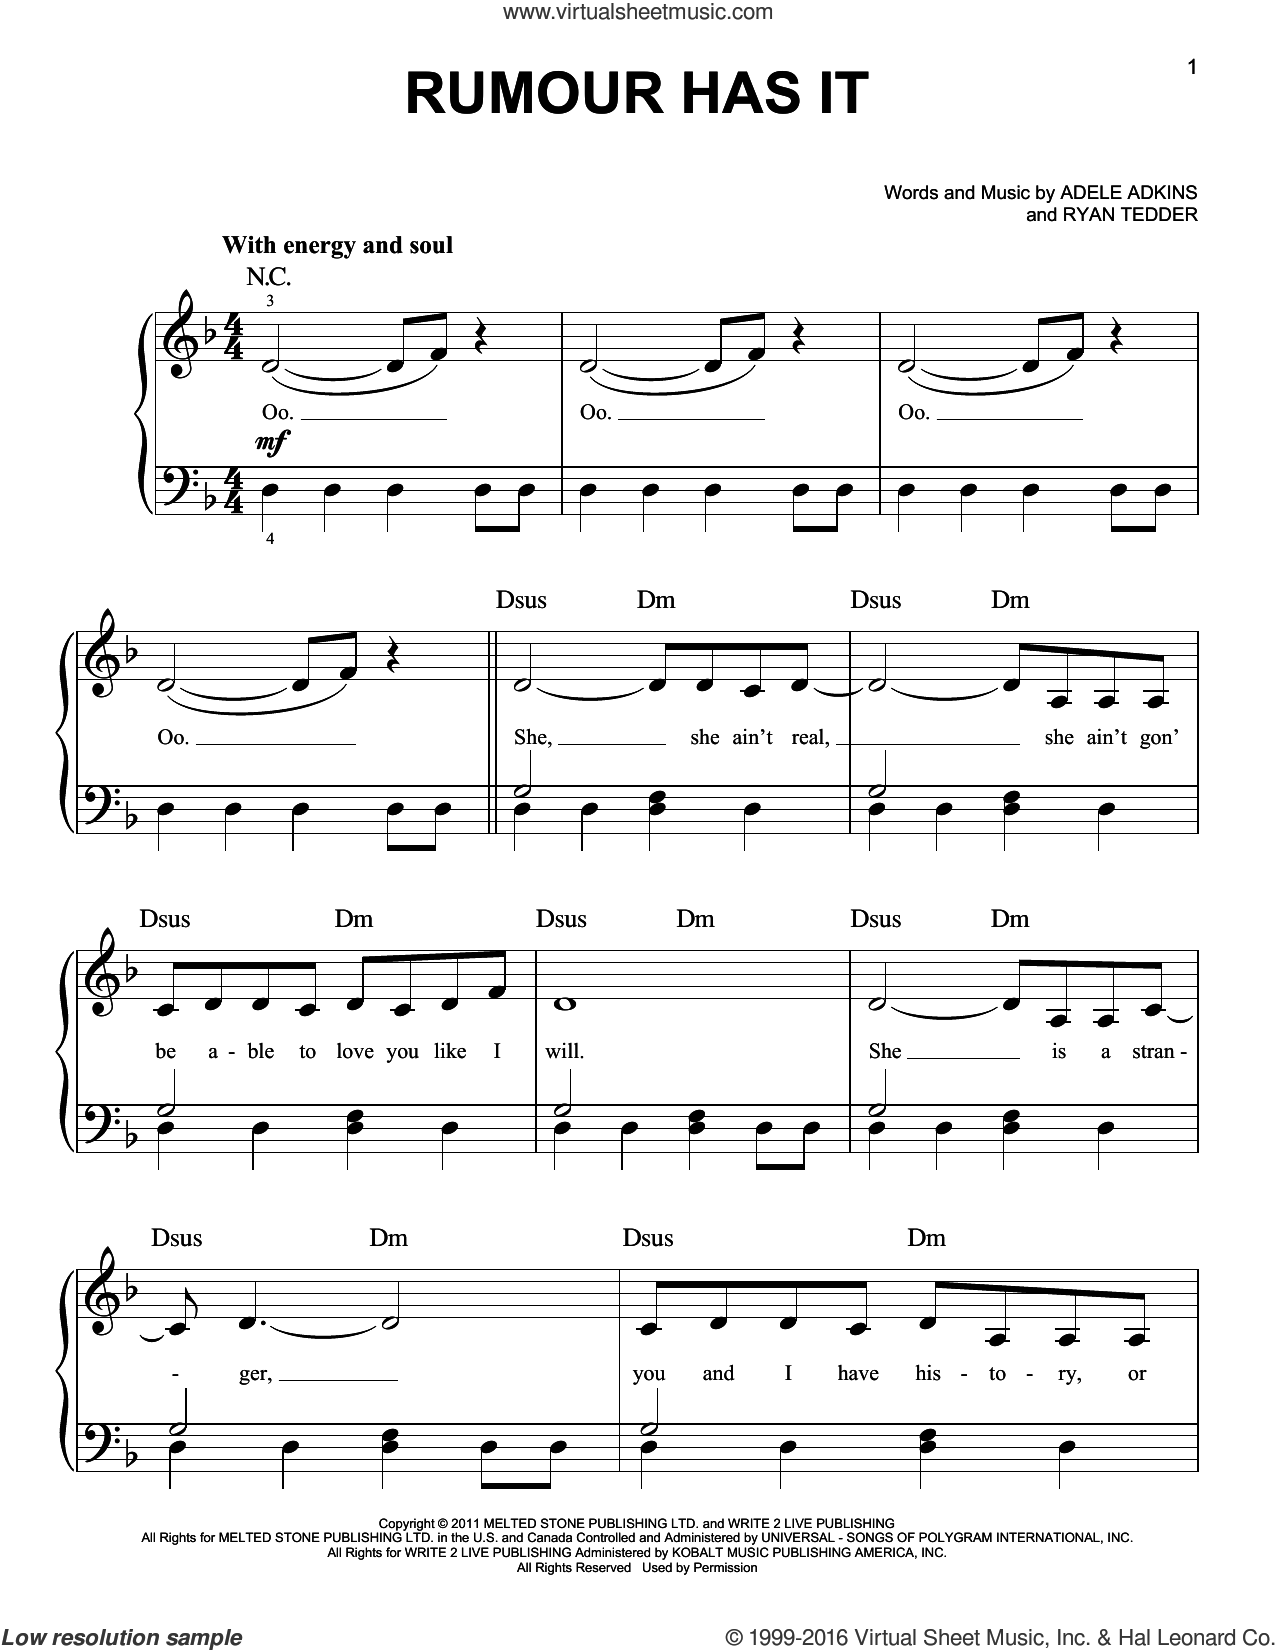 Rumour Has It sheet music for piano solo by Adele, Adele Adkins and Ryan Tedder, easy. Score Image Preview.